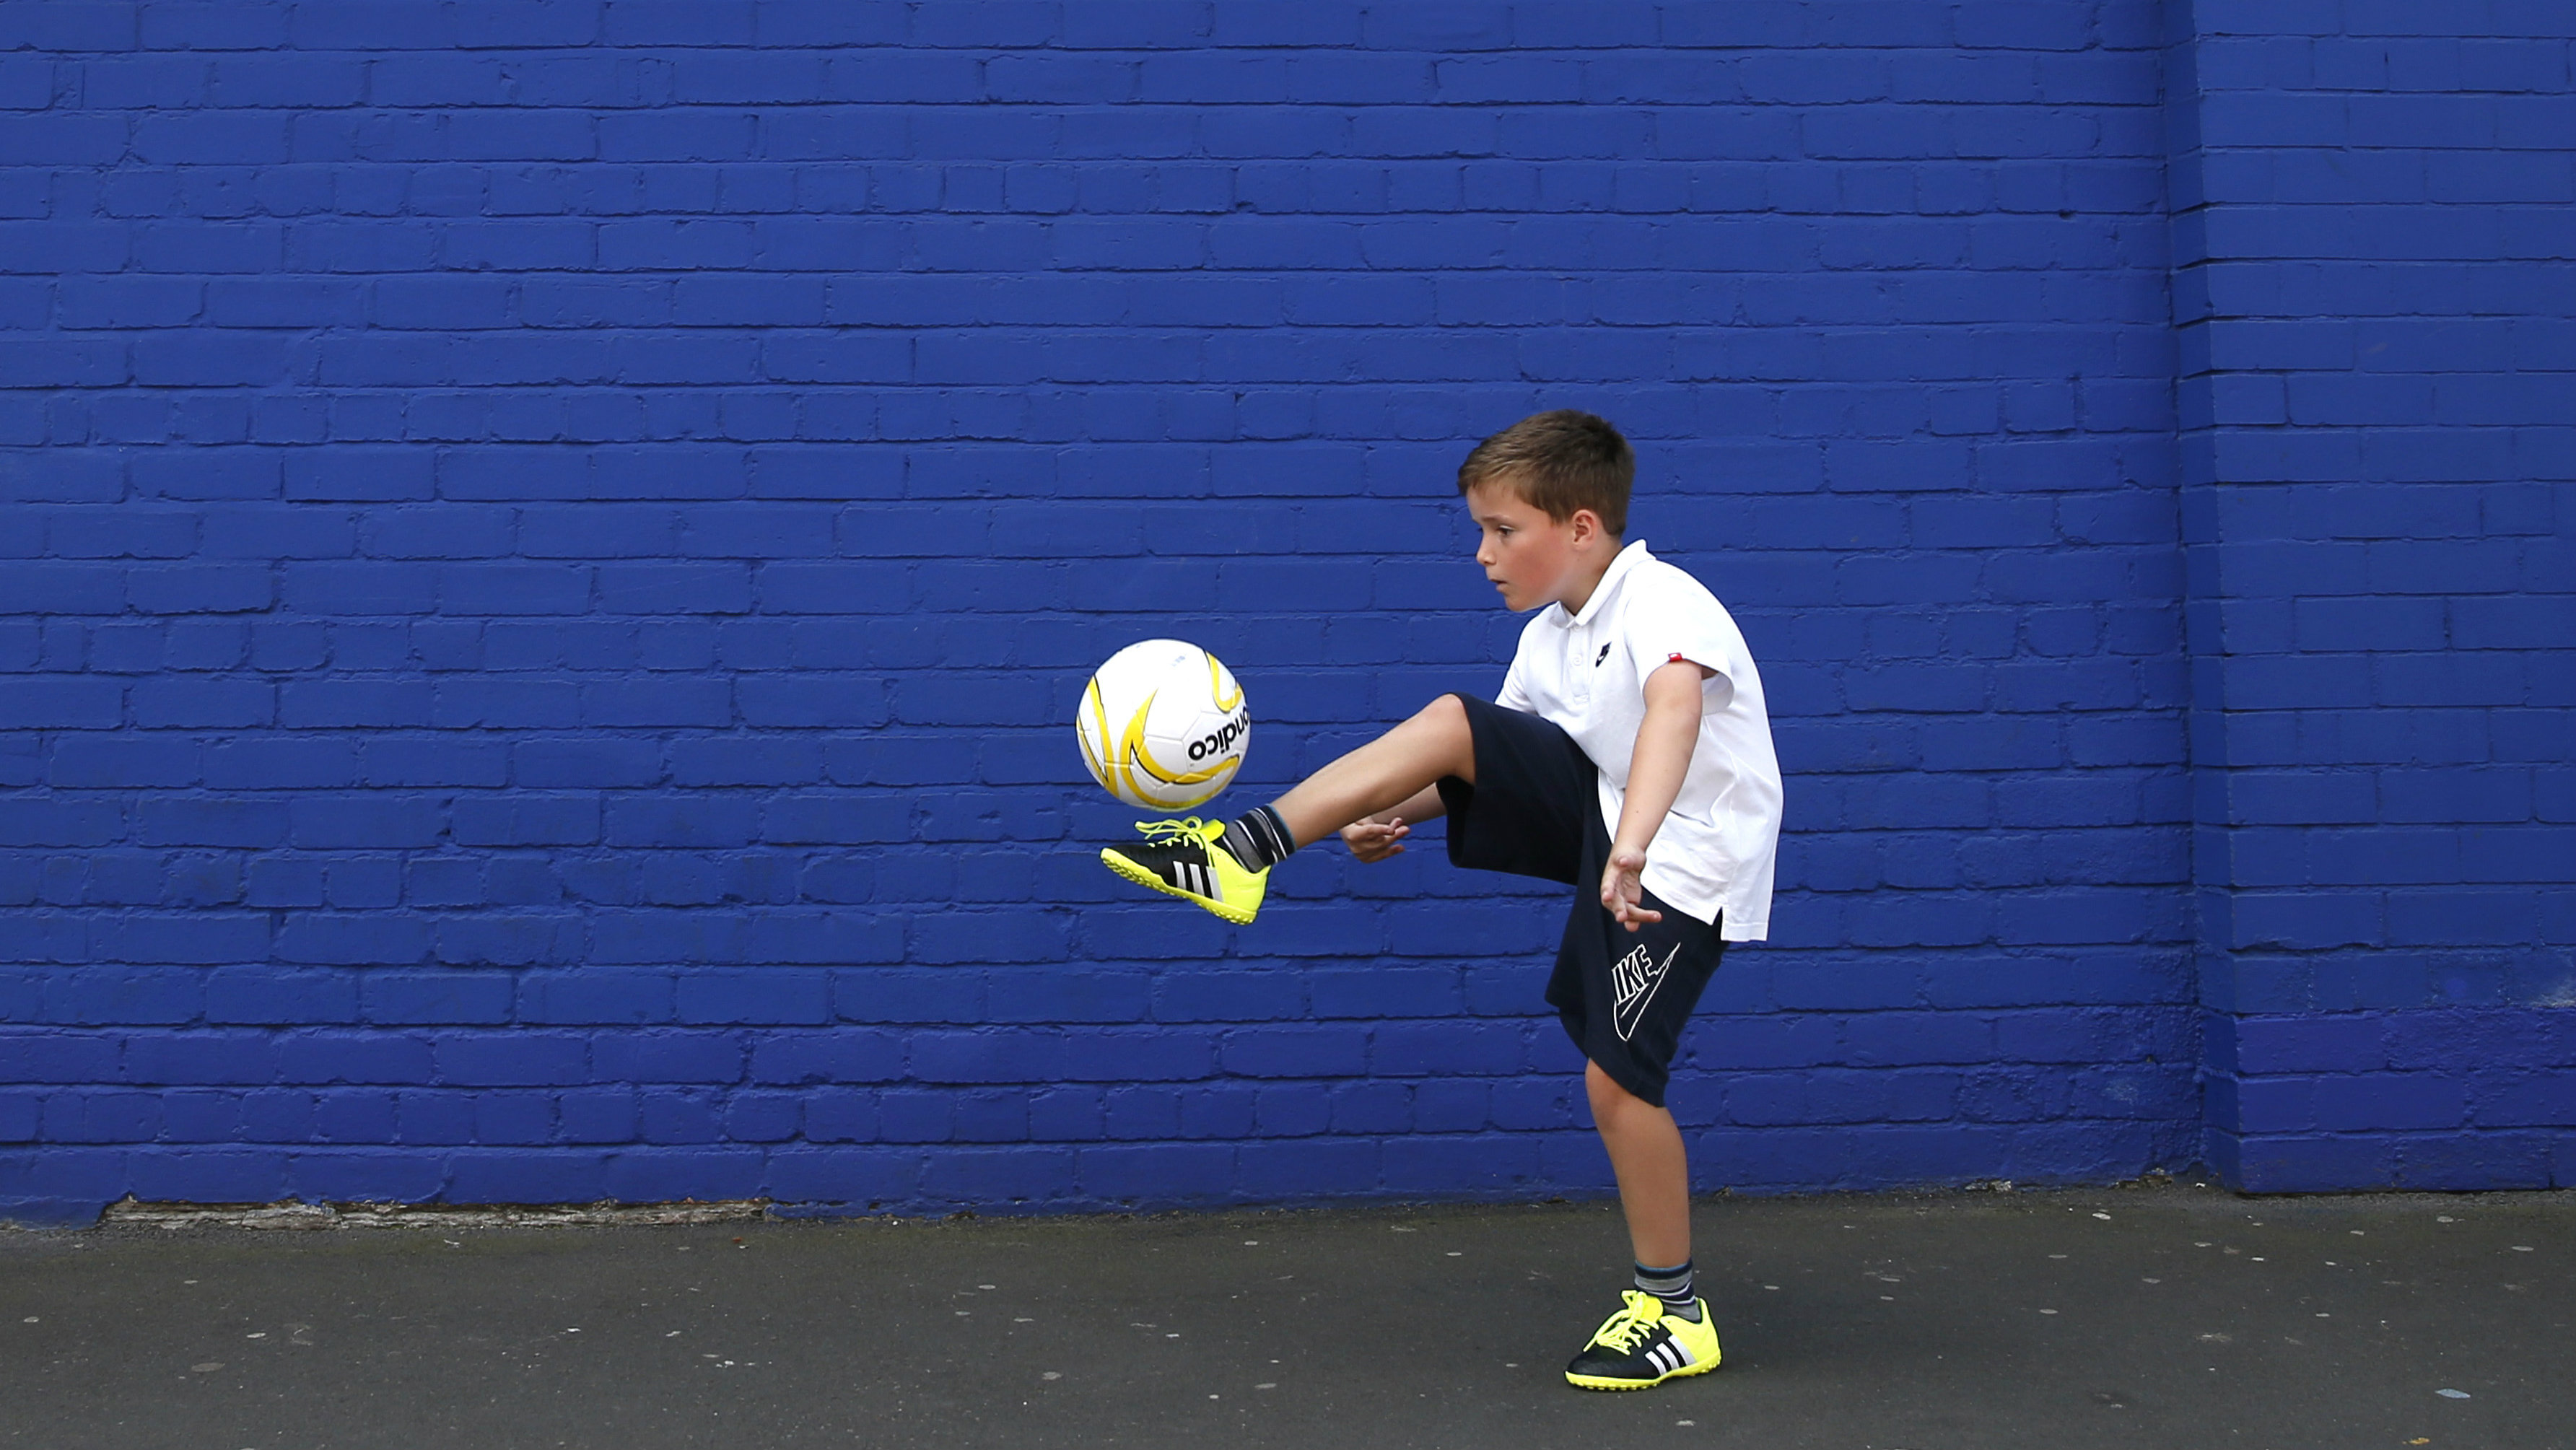 4d71c23bfcc28 American parents have become obsessed with their children being good at  sports